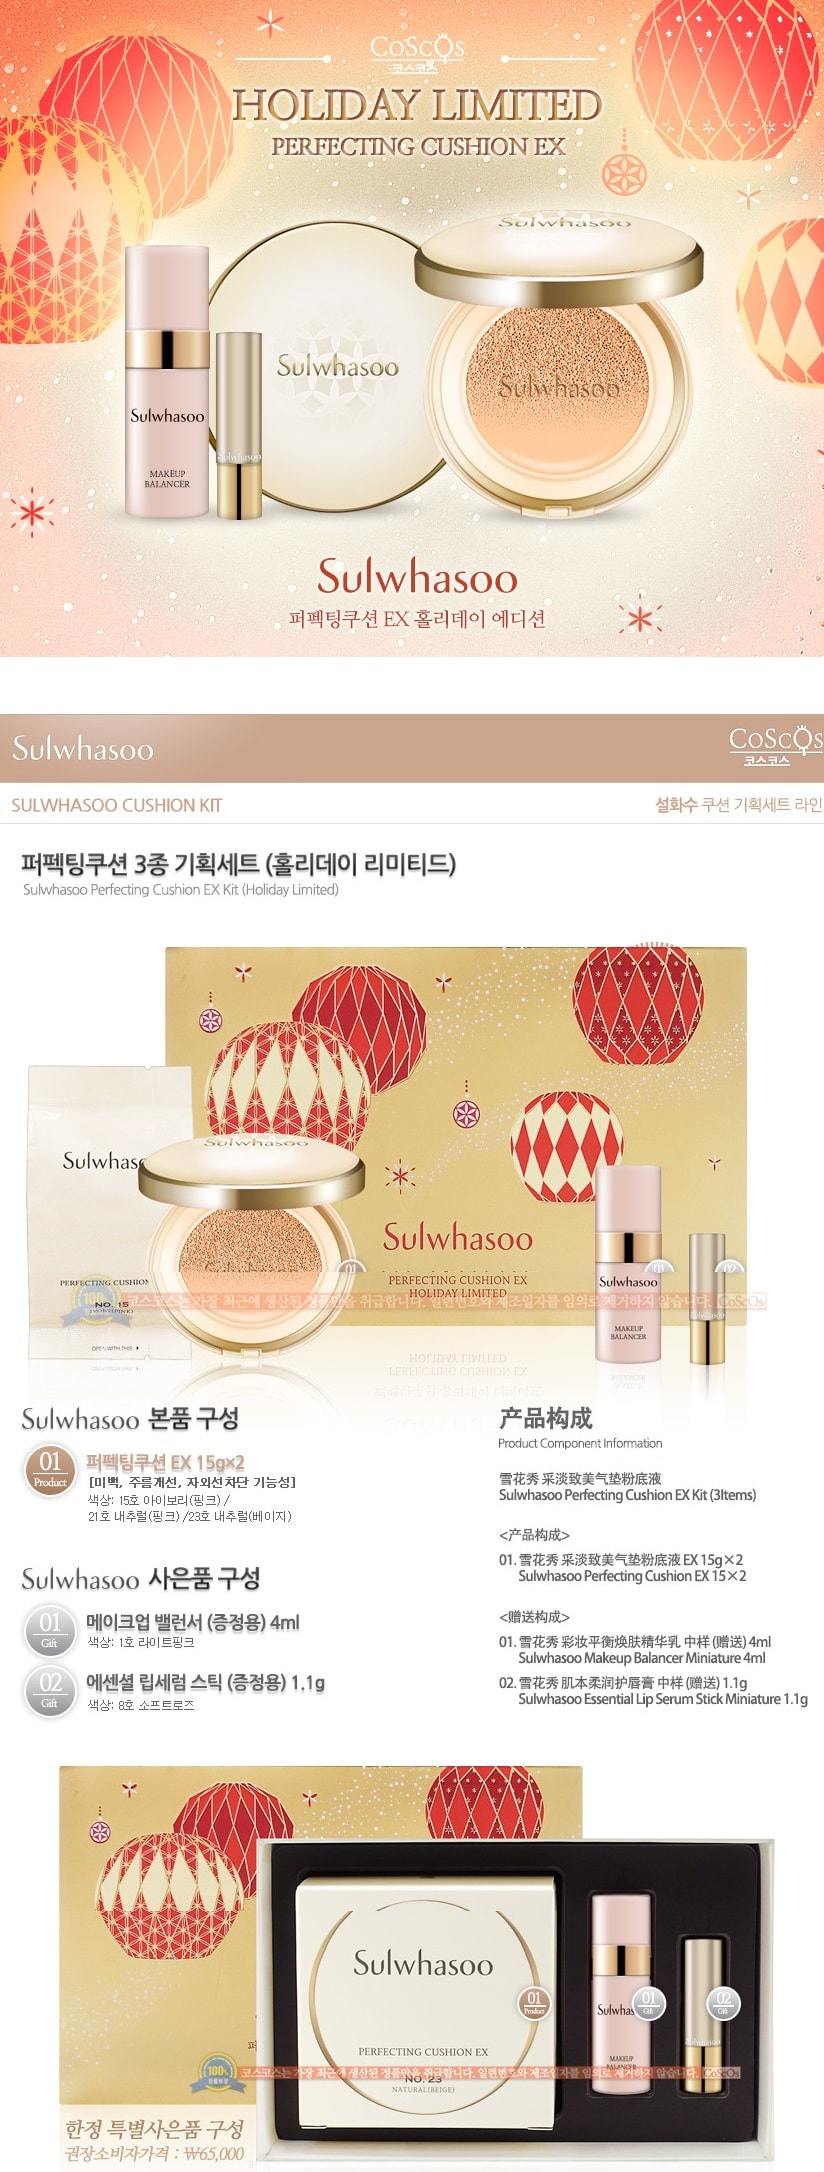 SULWHASOO Perfecting Cushion Holiday Limited - No.21